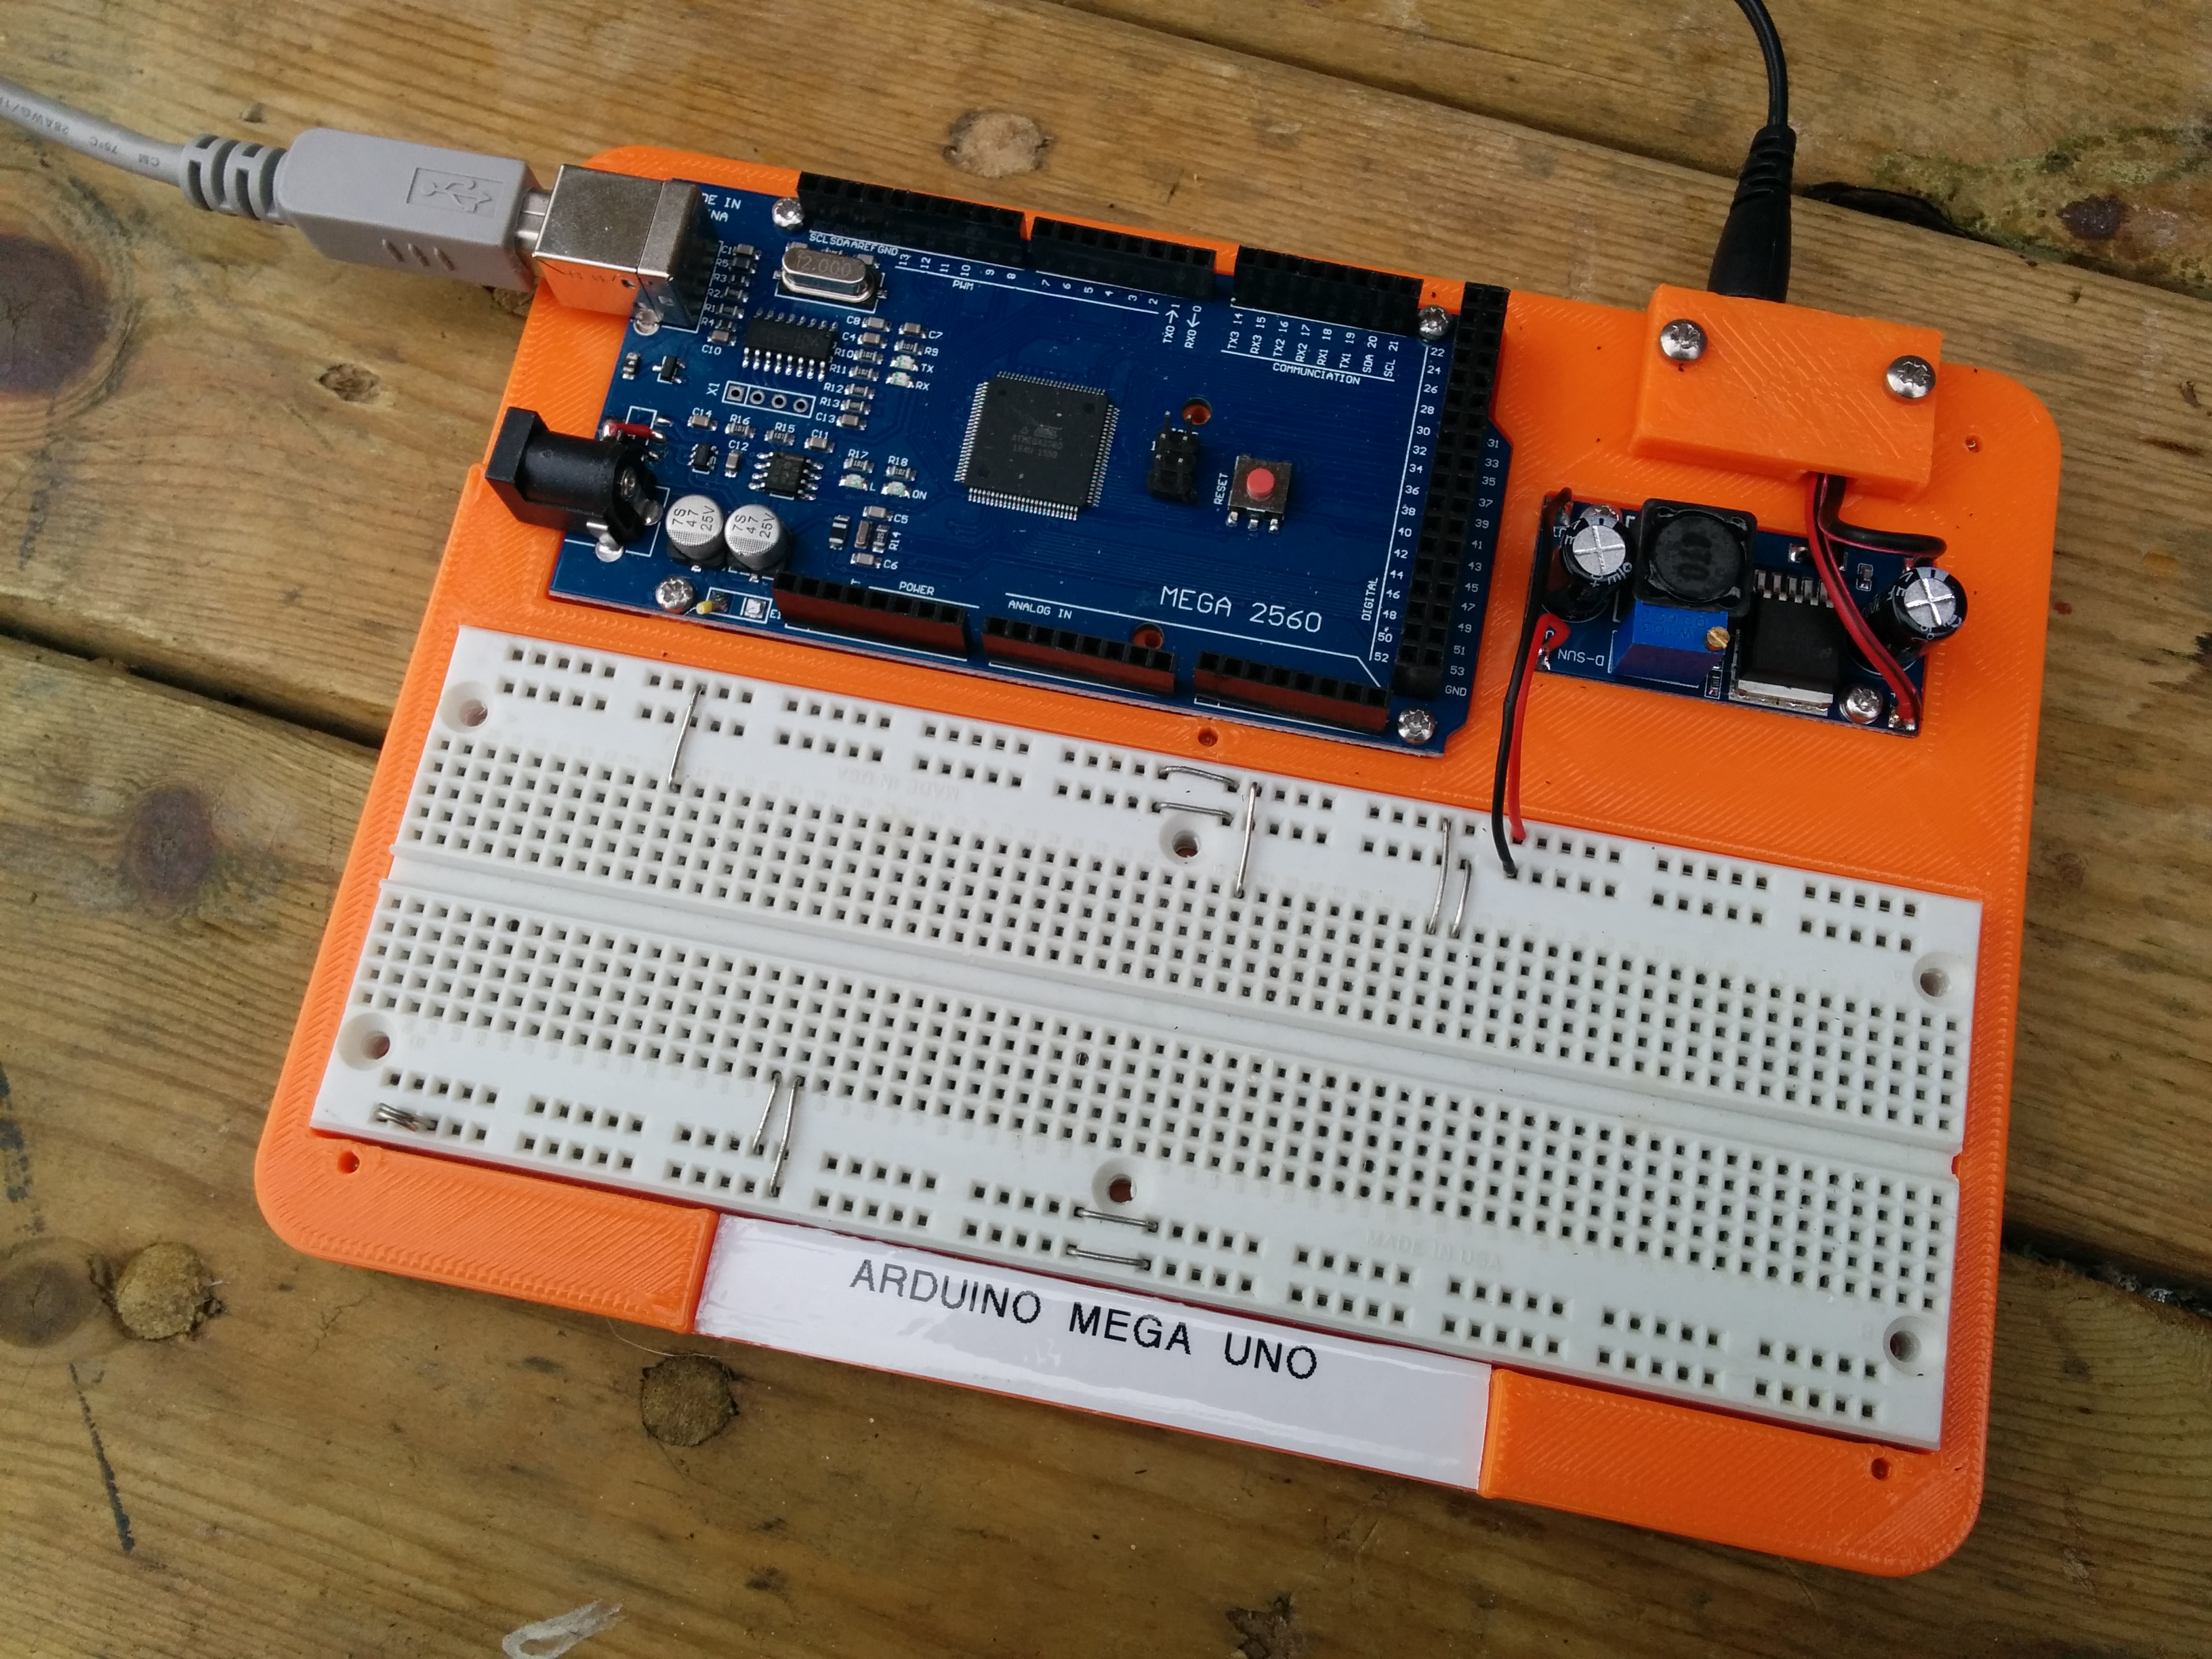 Breadboard For Arduino Mega Or Uno With Regulator By Dimwit Dave Breadboards Electronics Images Original